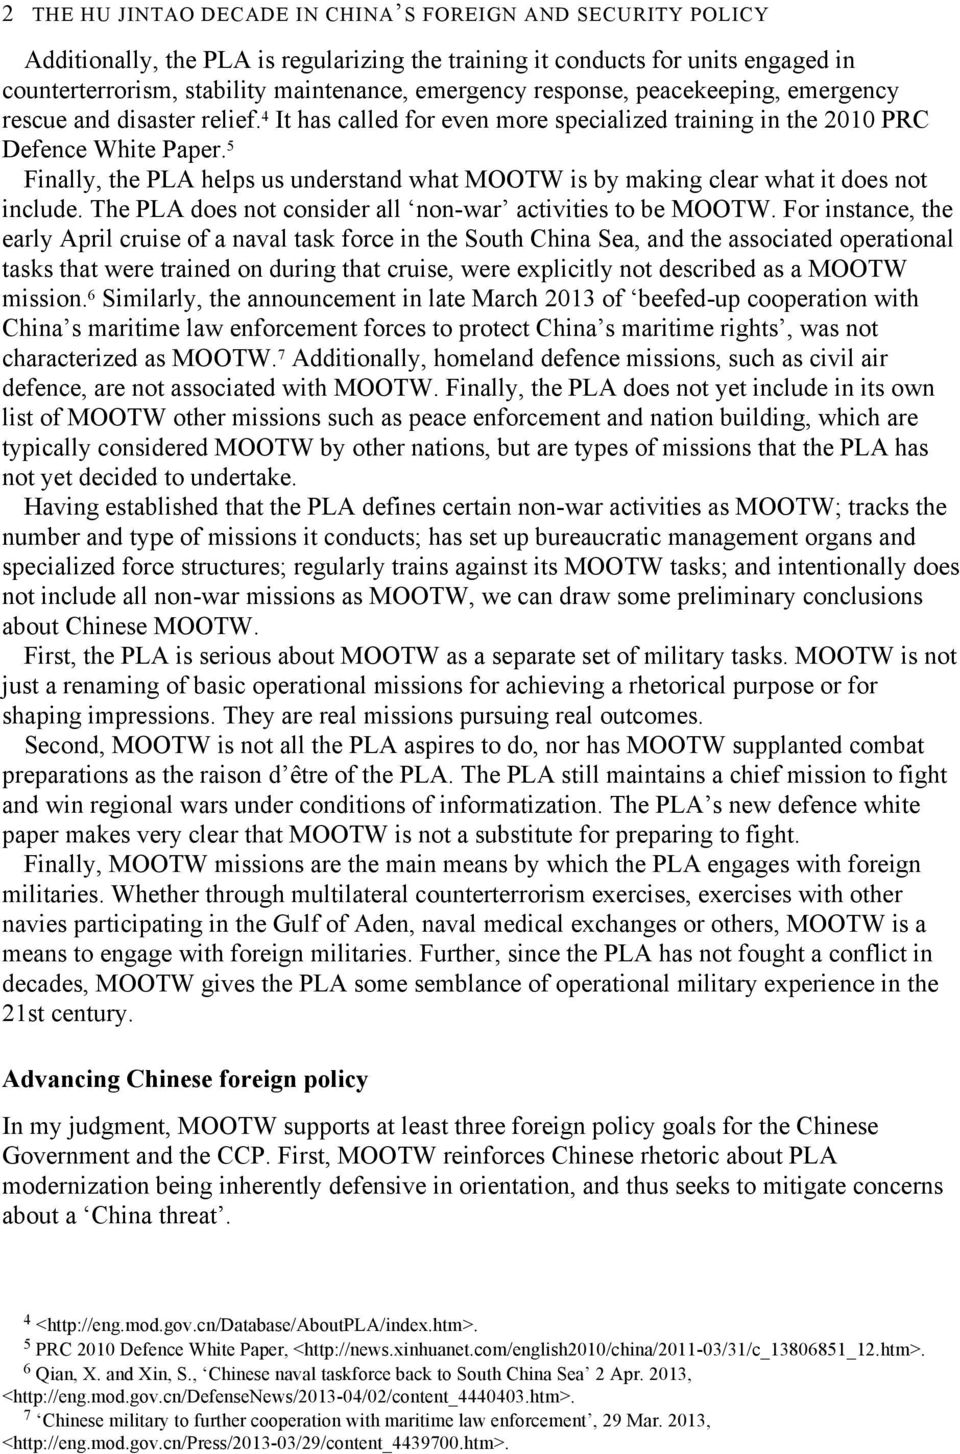 5 Finally, the PLA helps us understand what MOOTW is by making clear what it does not include. The PLA does not consider all non-war activities to be MOOTW.